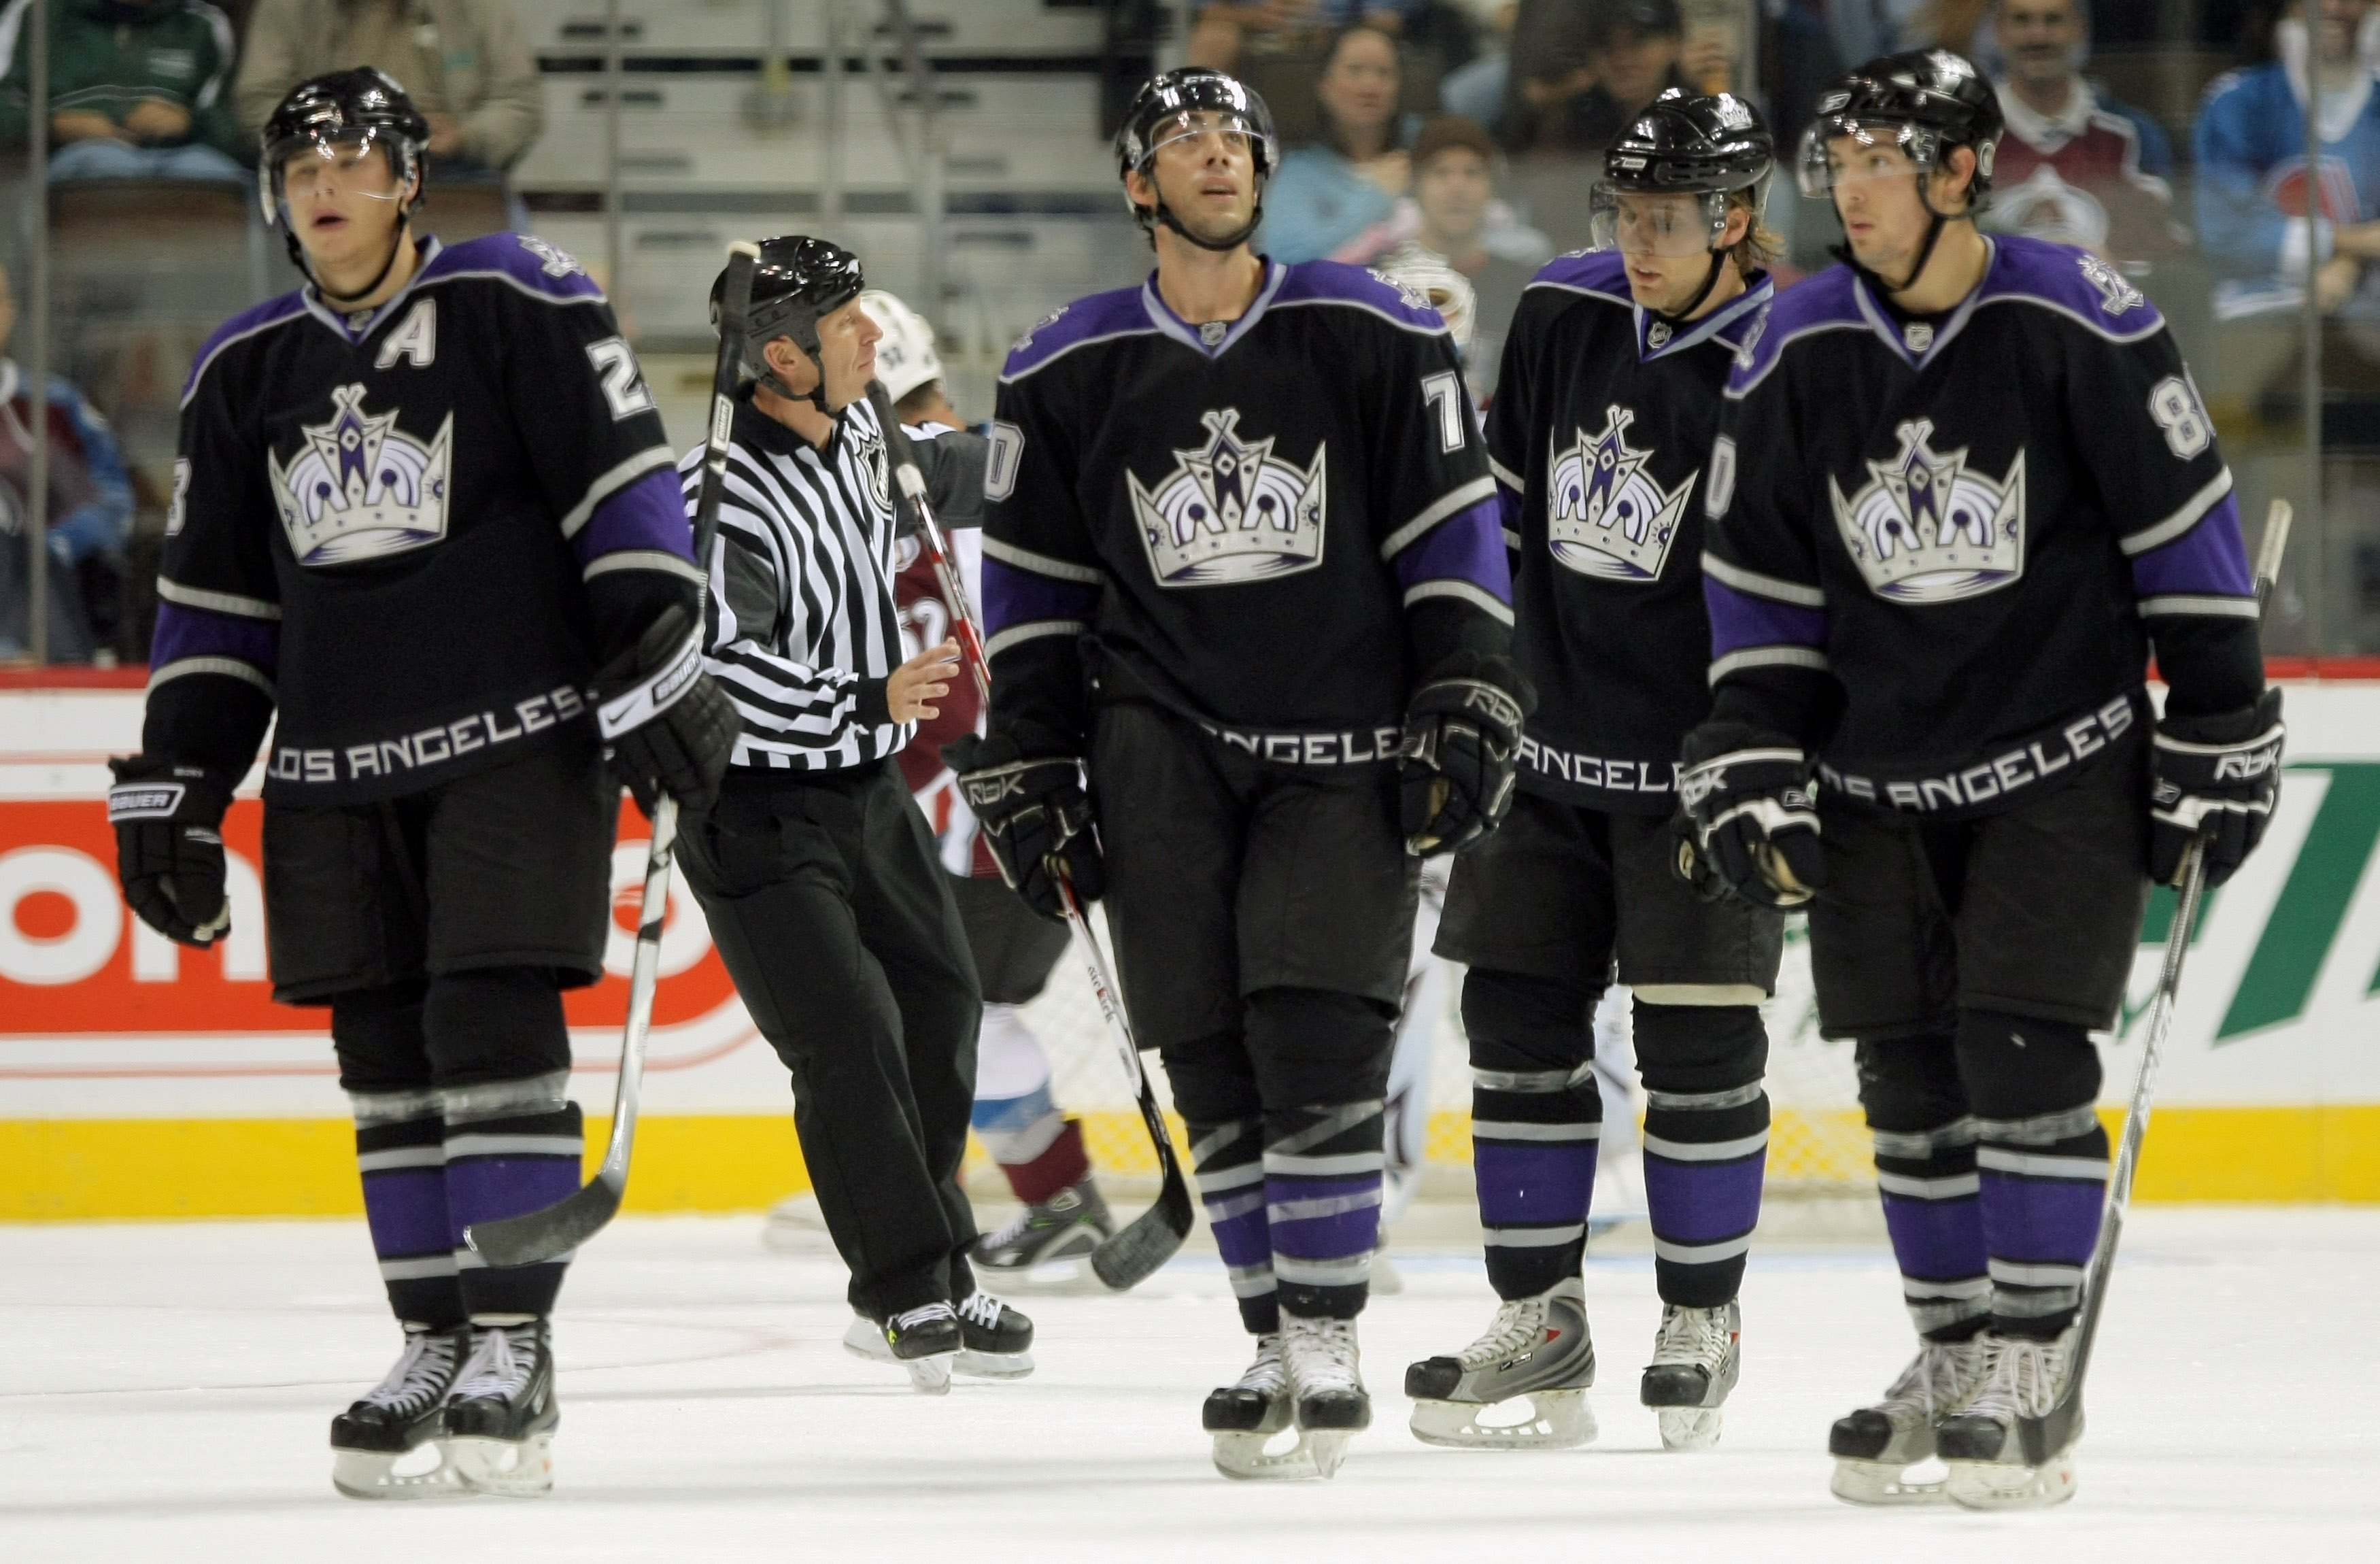 DENVER - SEPTEMBER 24:  Dustin Brown #23, Matt Moulson #70, Jack Johnson #3 and Drew Doughty #80 of the Los Angeles Kings head toward the bench after scoring against the Colorado Avalanche during NHL preseason action at the Pepsi Center on September 24, 2